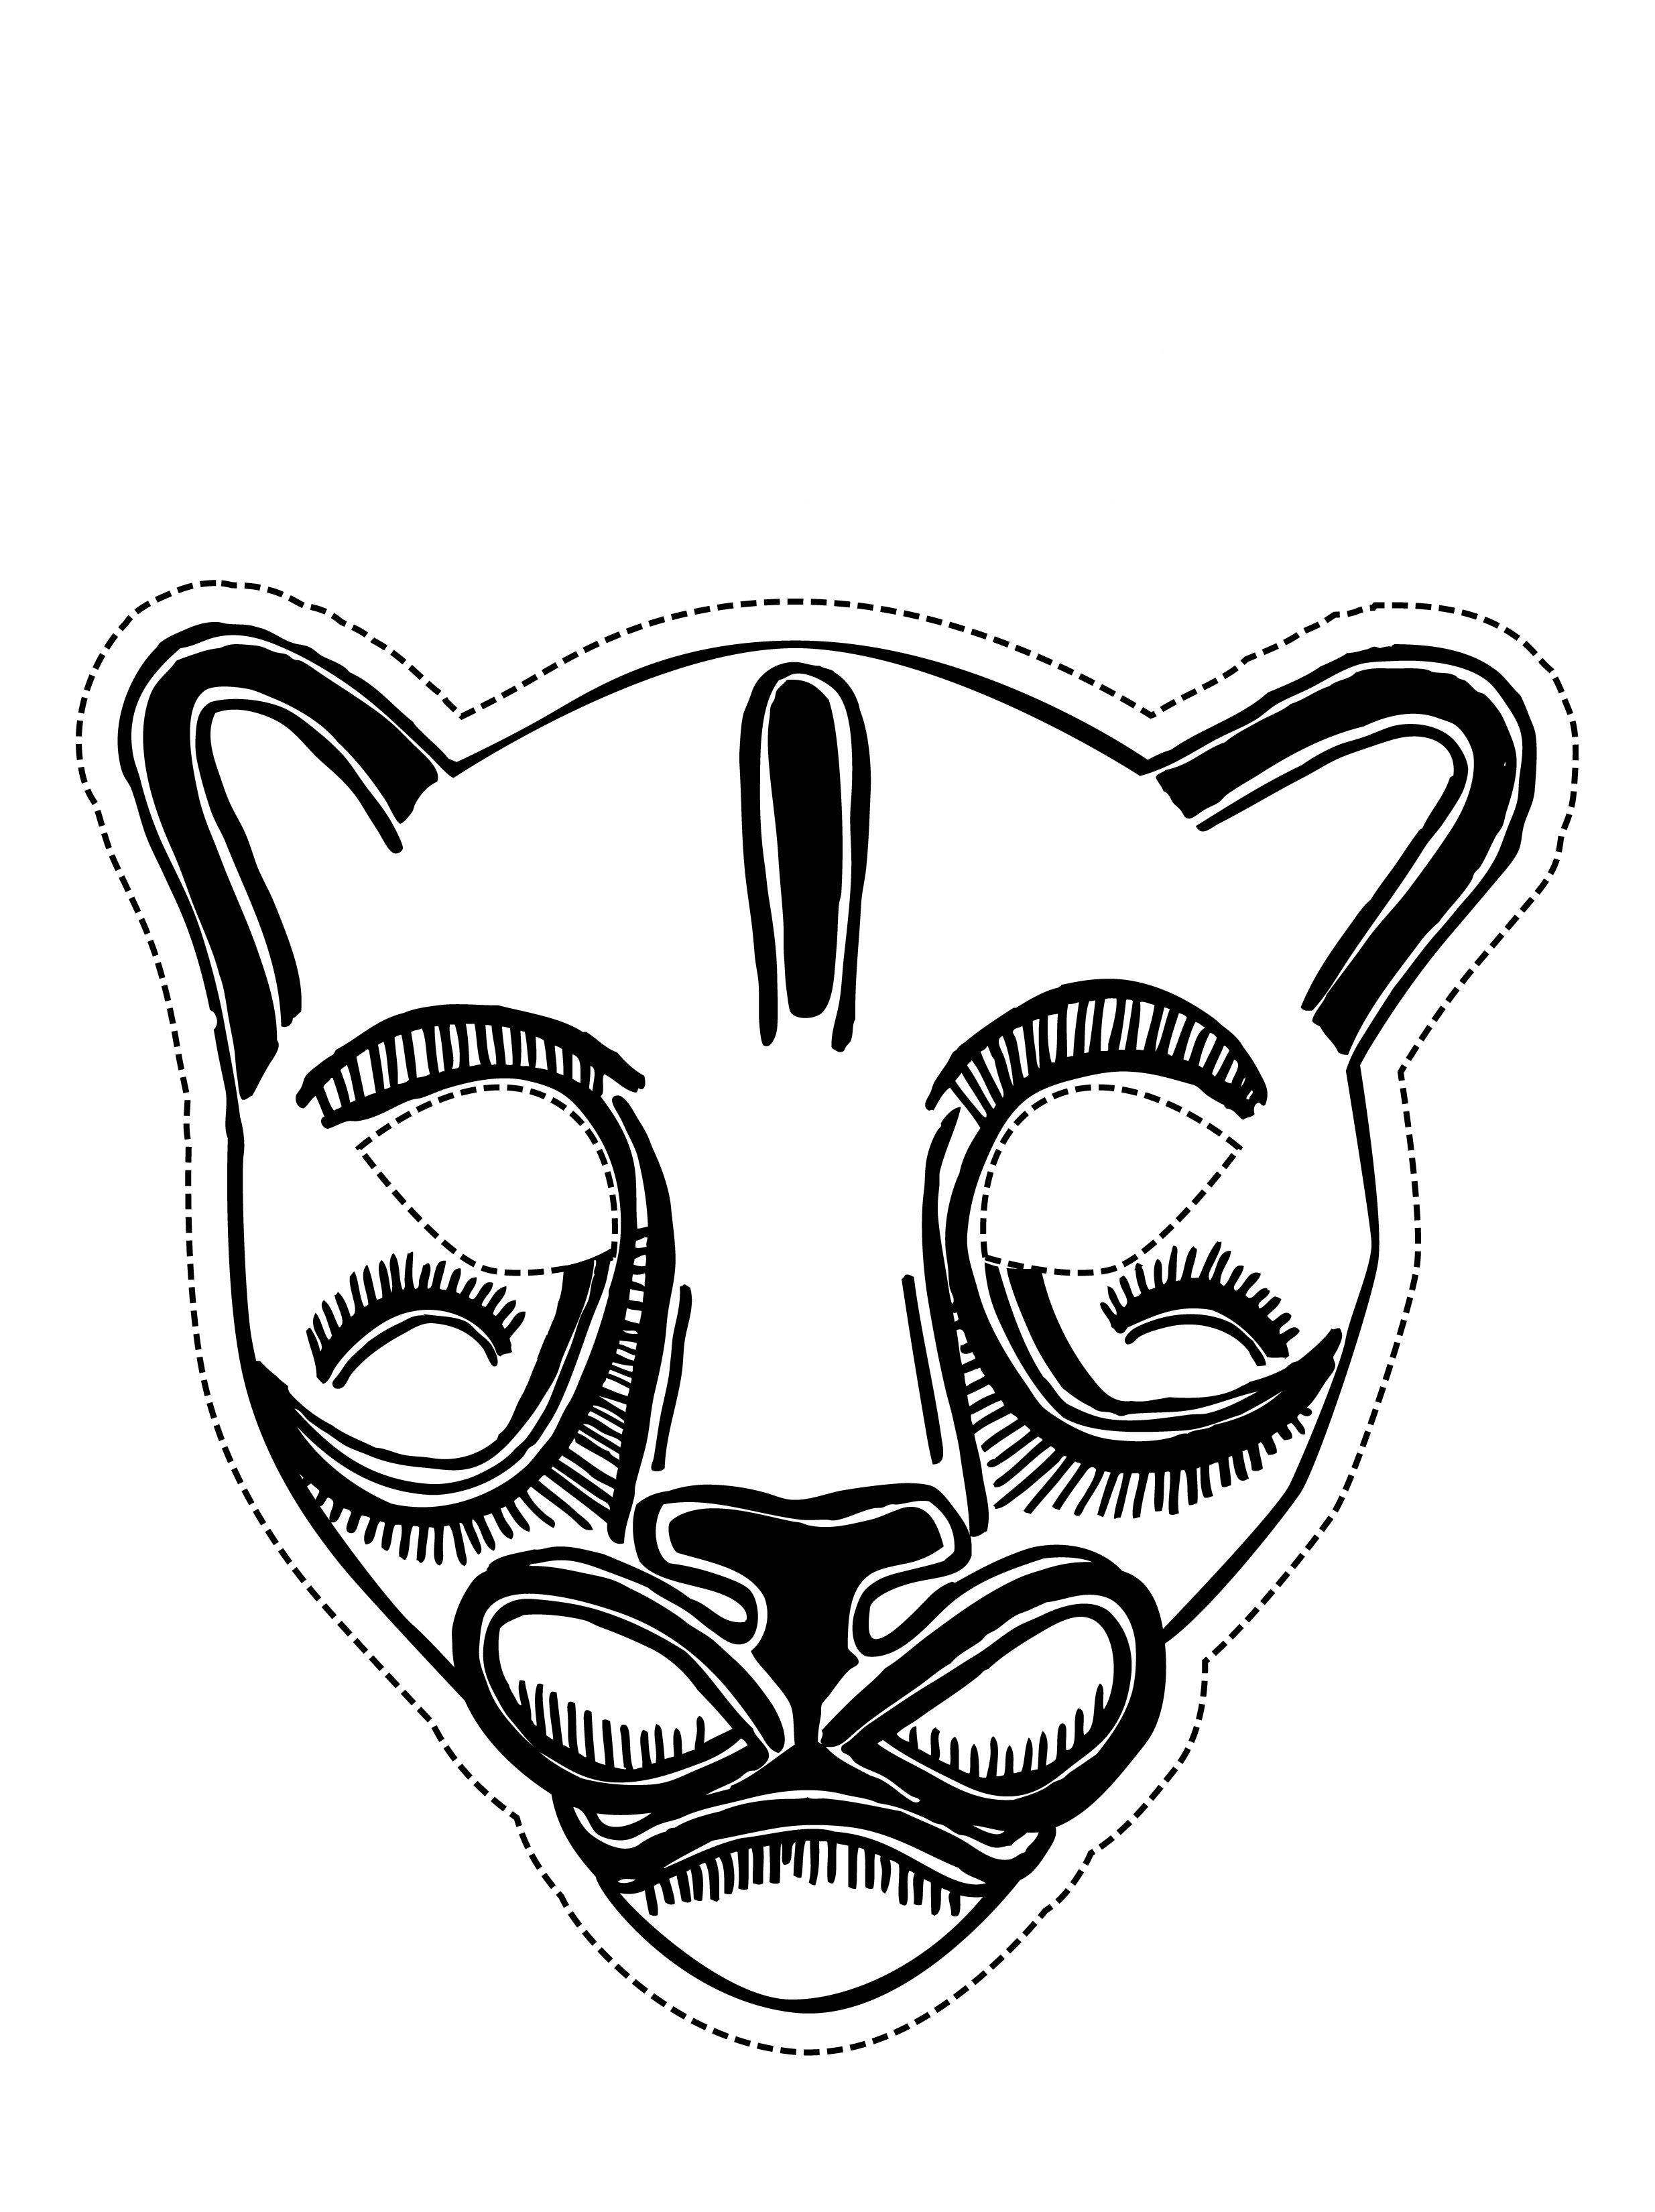 Animal Mask Coloring Pages | 1 | Pinterest | Animal masks and Paper toys